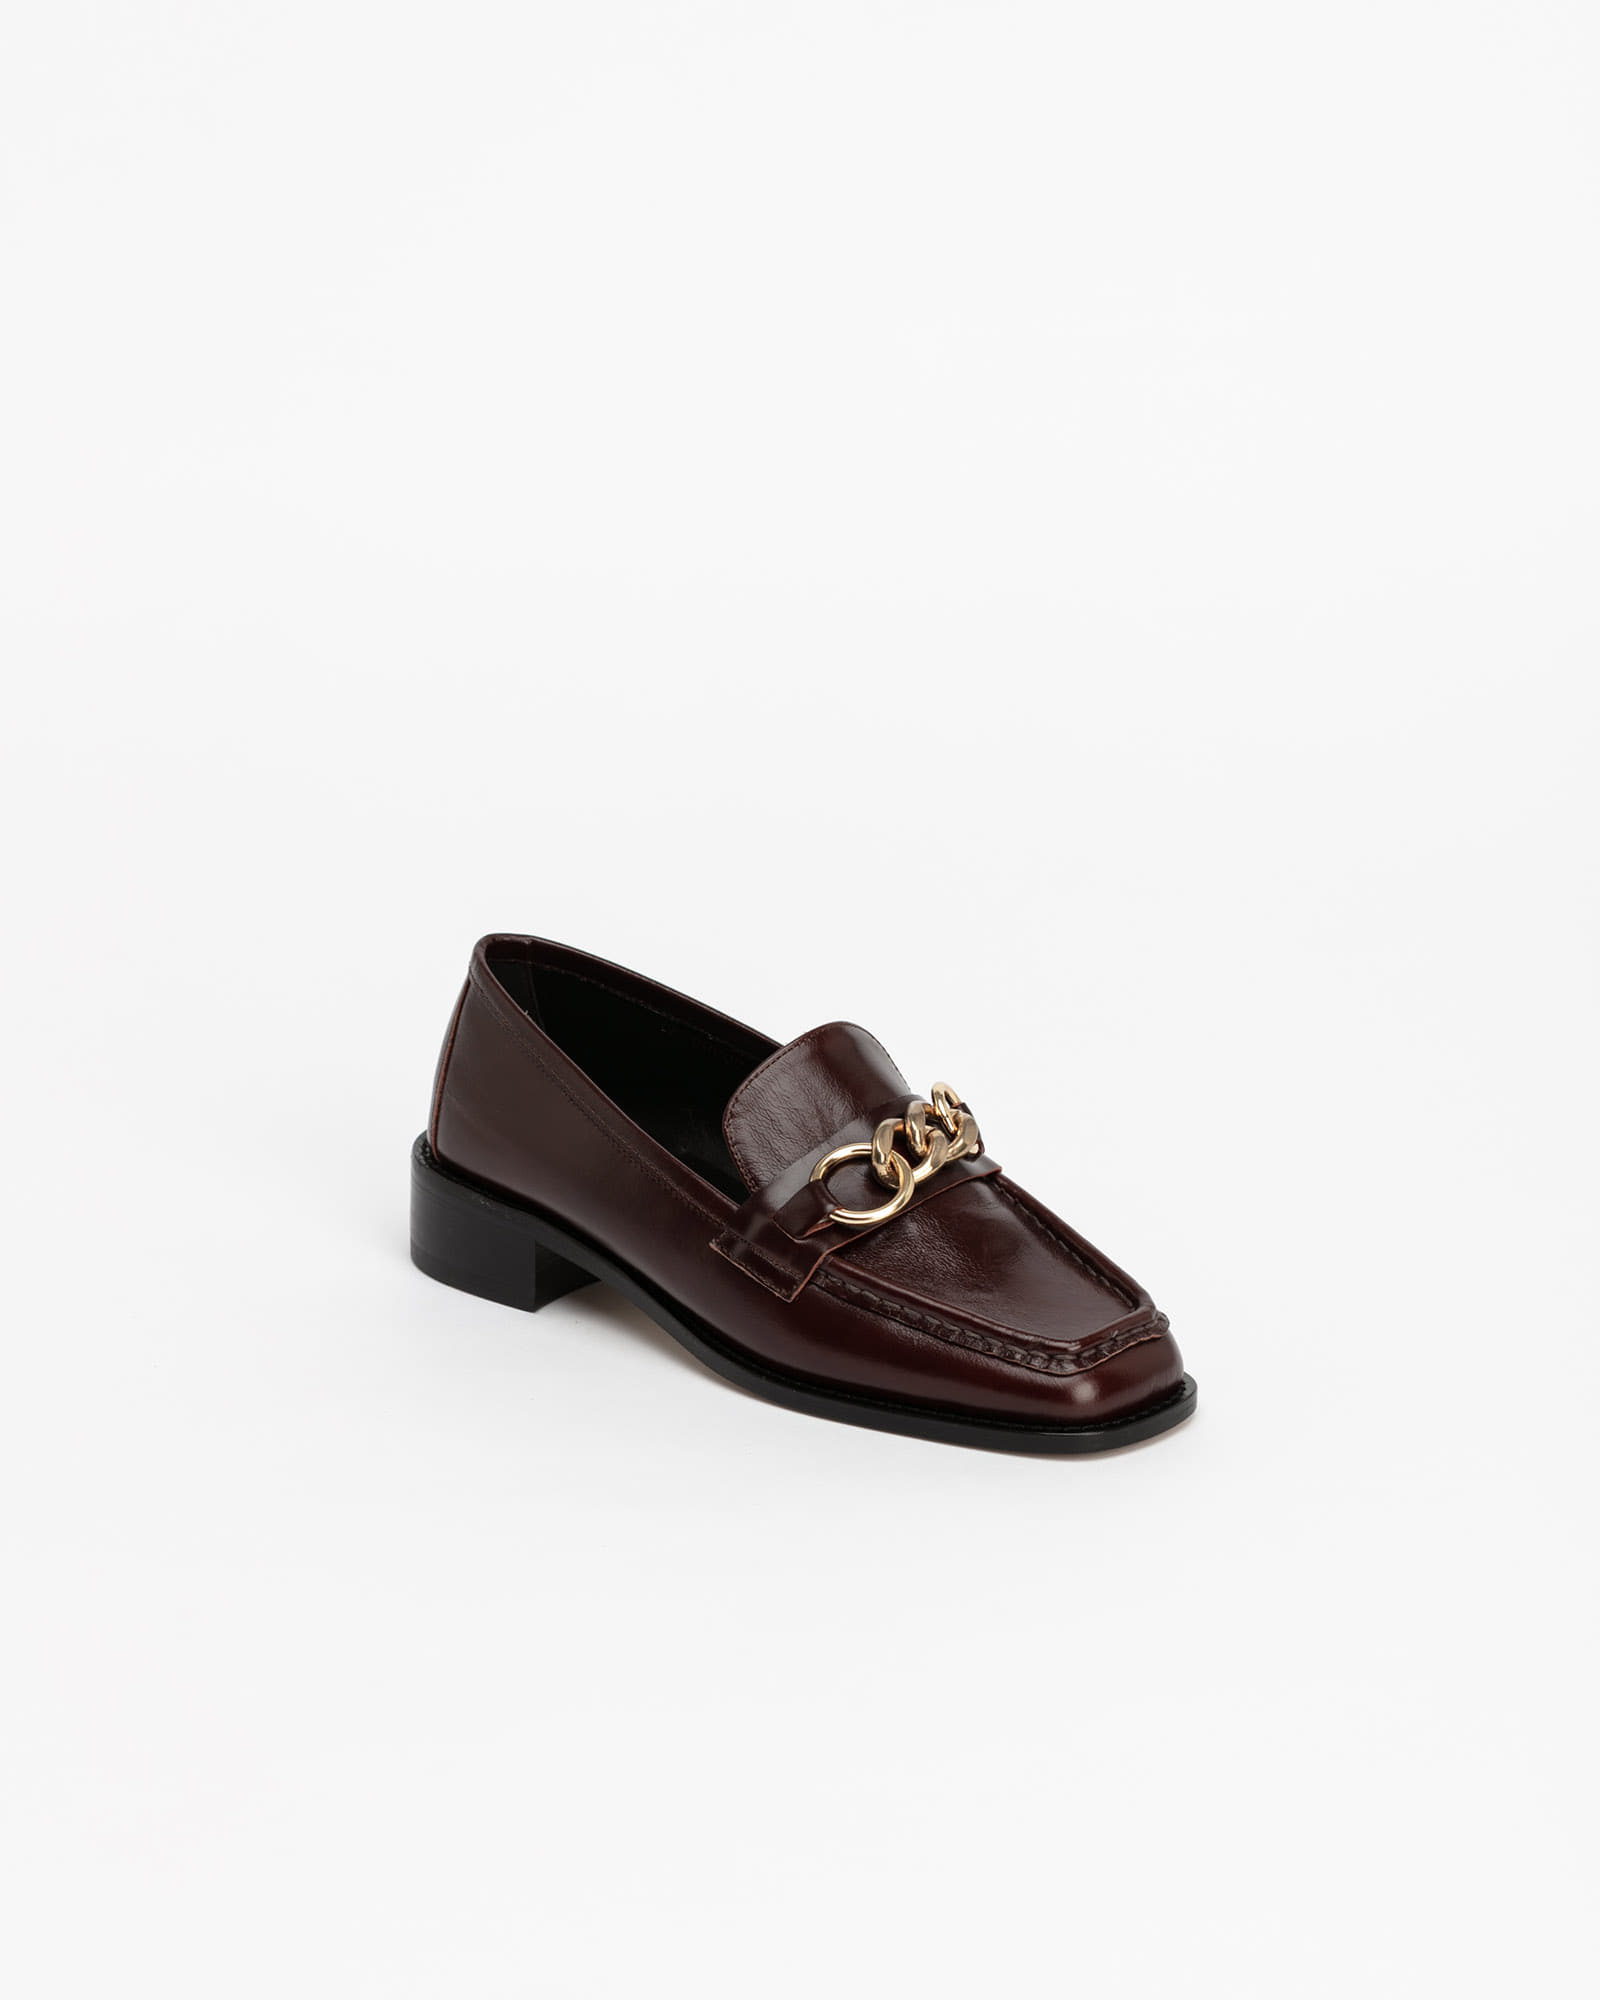 Greta Chained Soft Loafers in Textured Wine